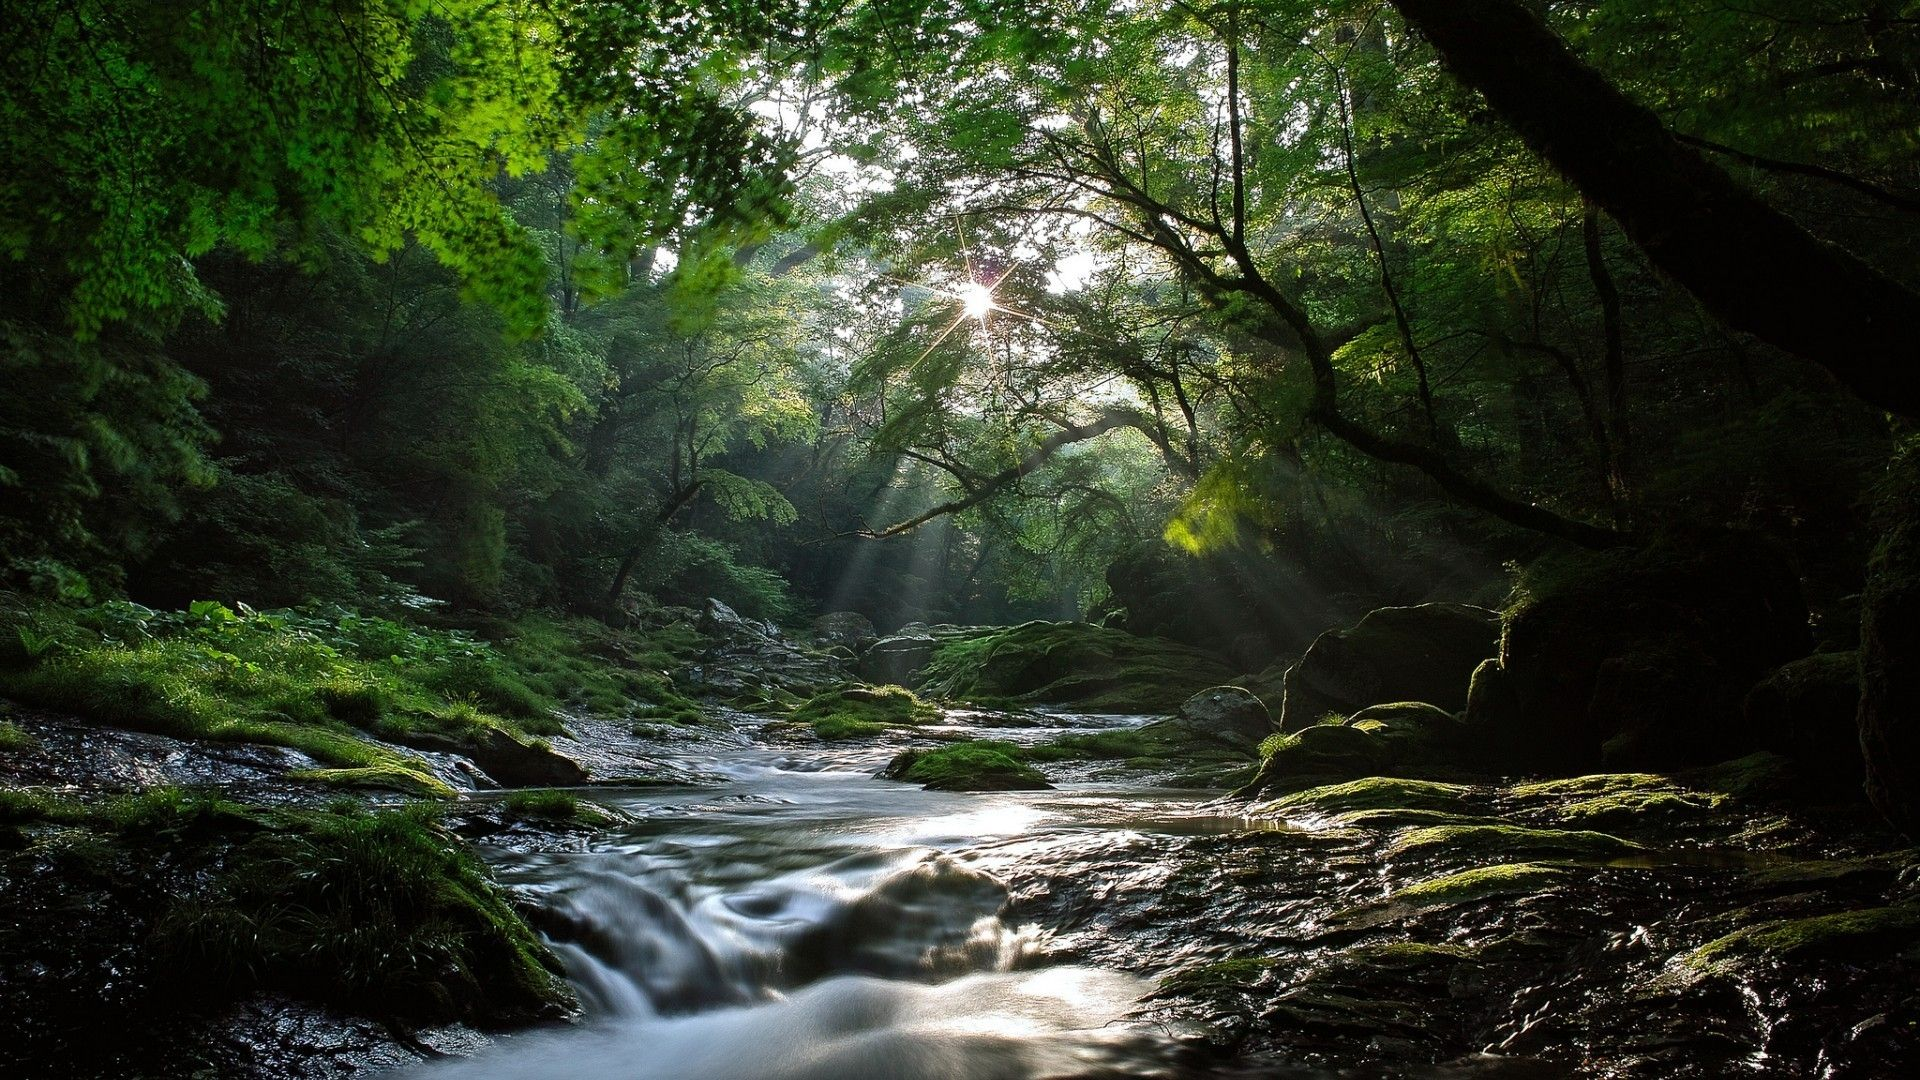 Forest Landscape With River Reference Rivers Of Living Water Beautiful Forest Vacation Trips